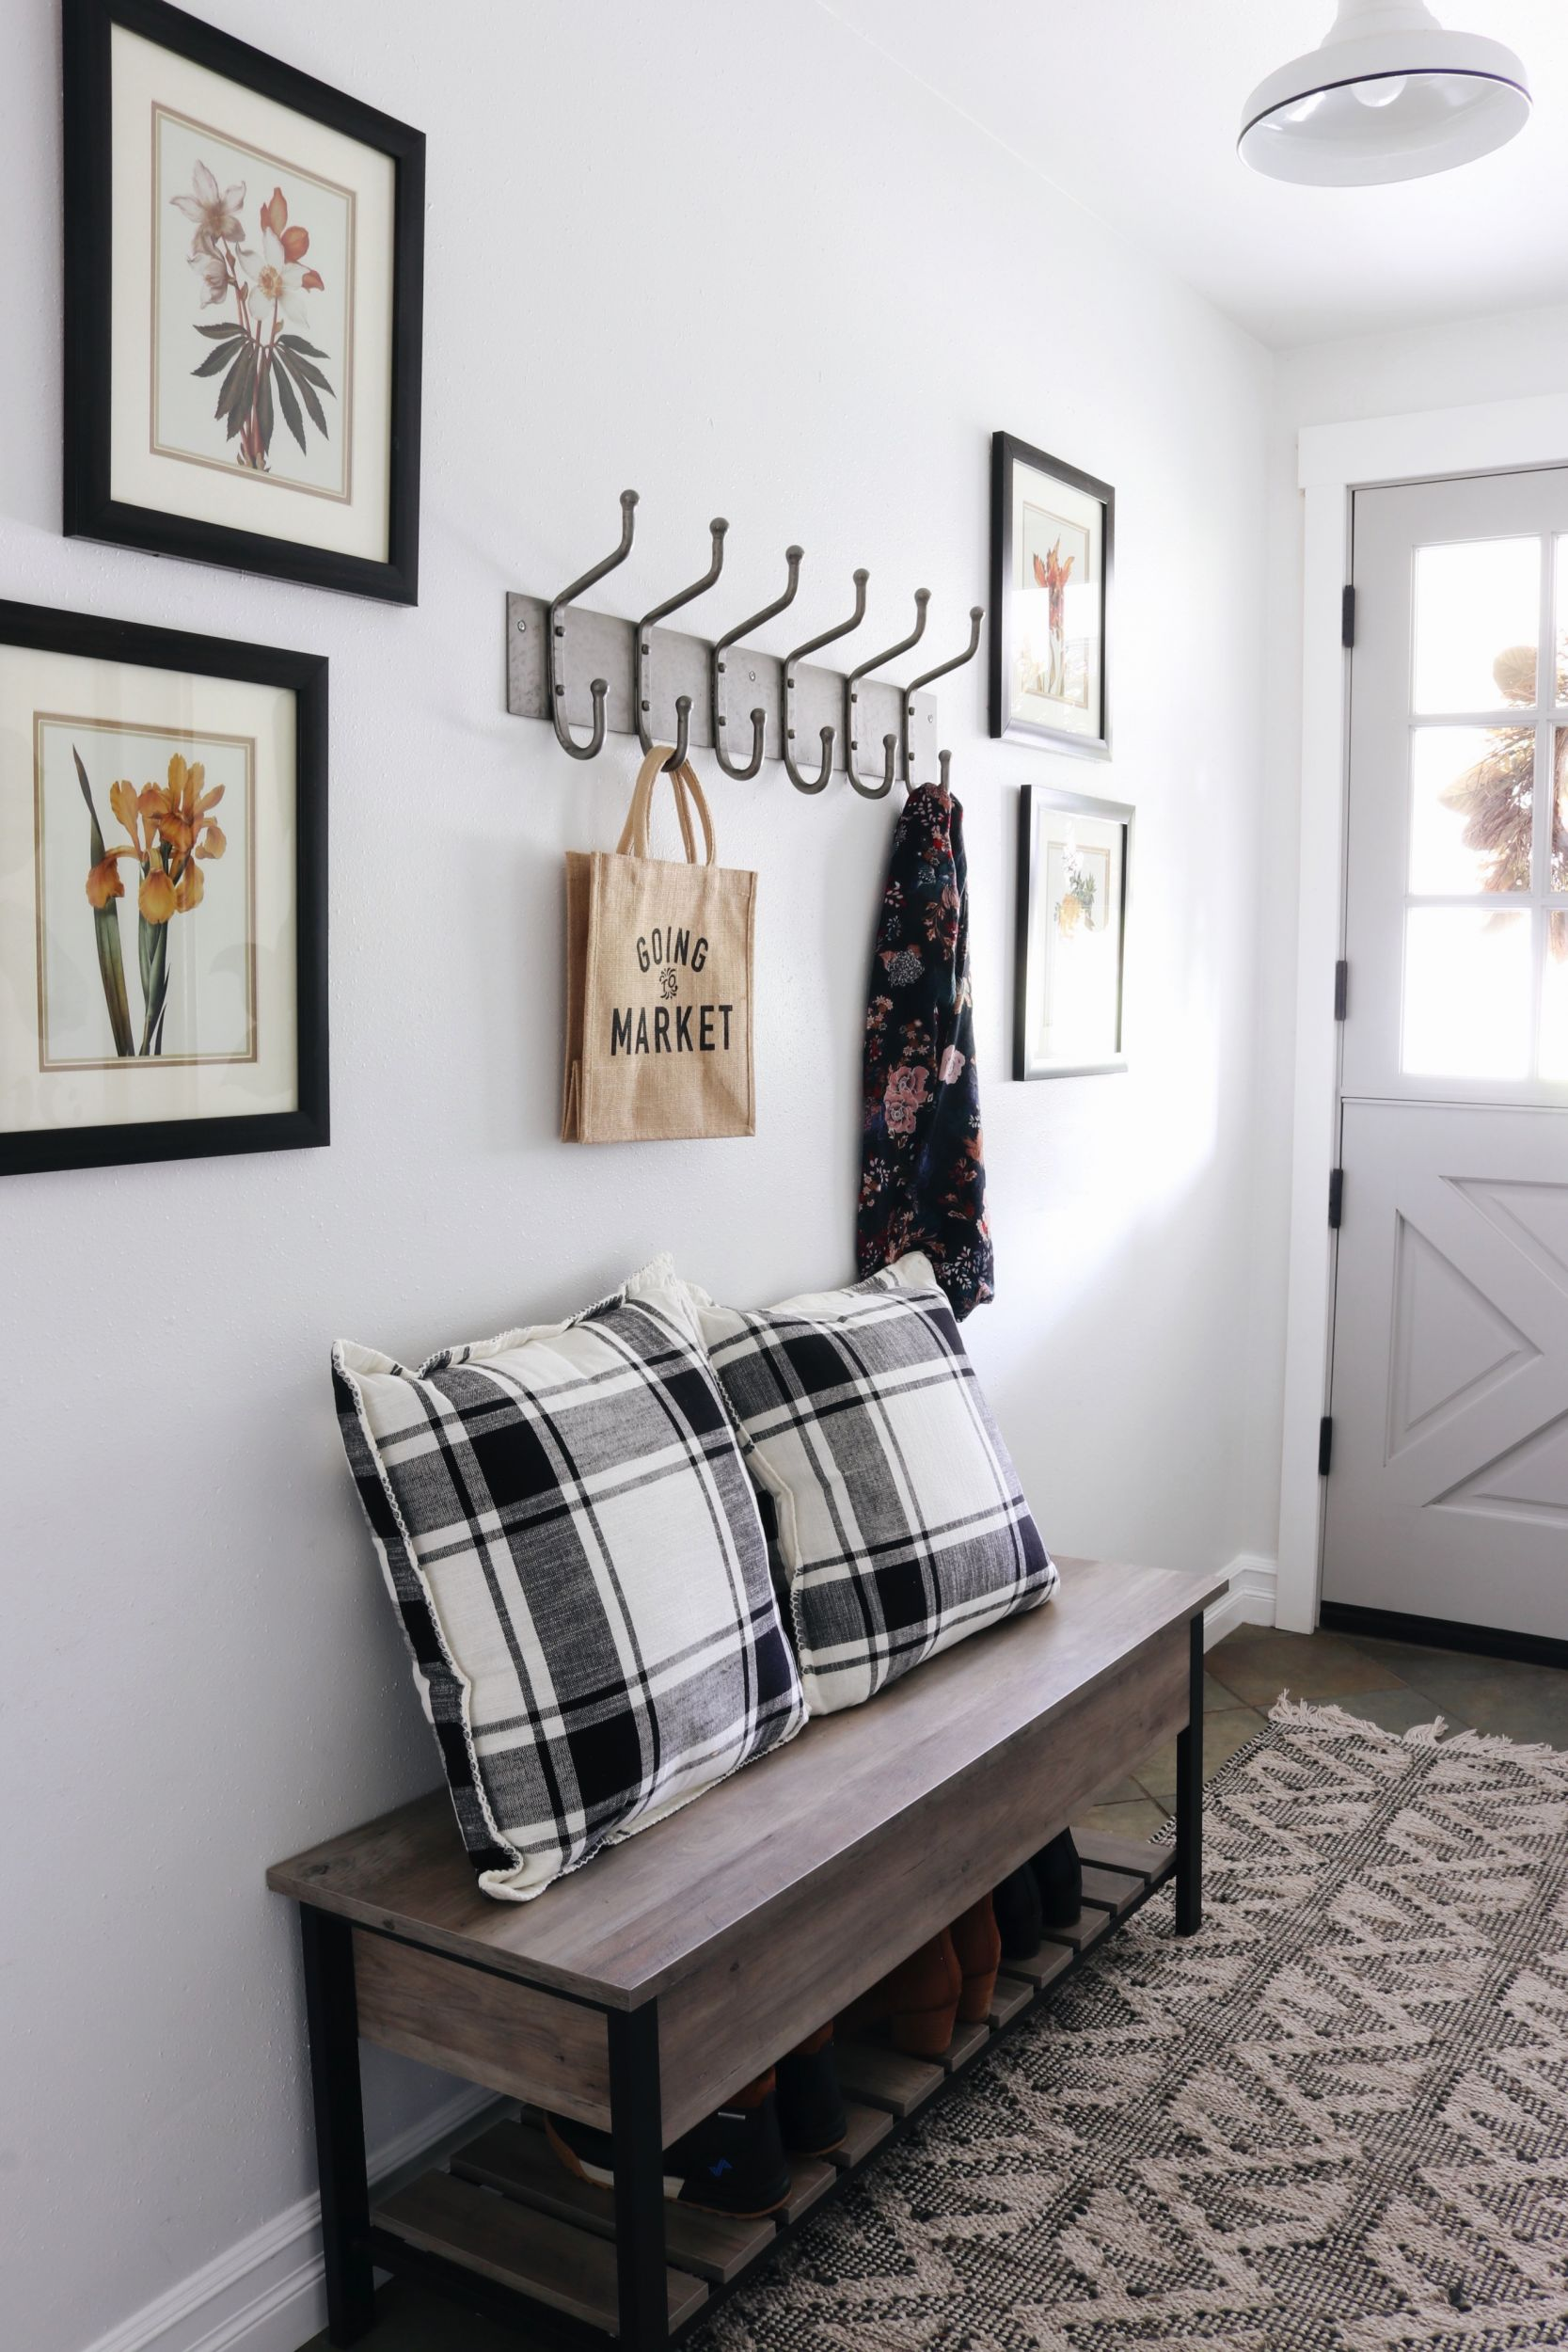 How to add Character with Light Fixtures